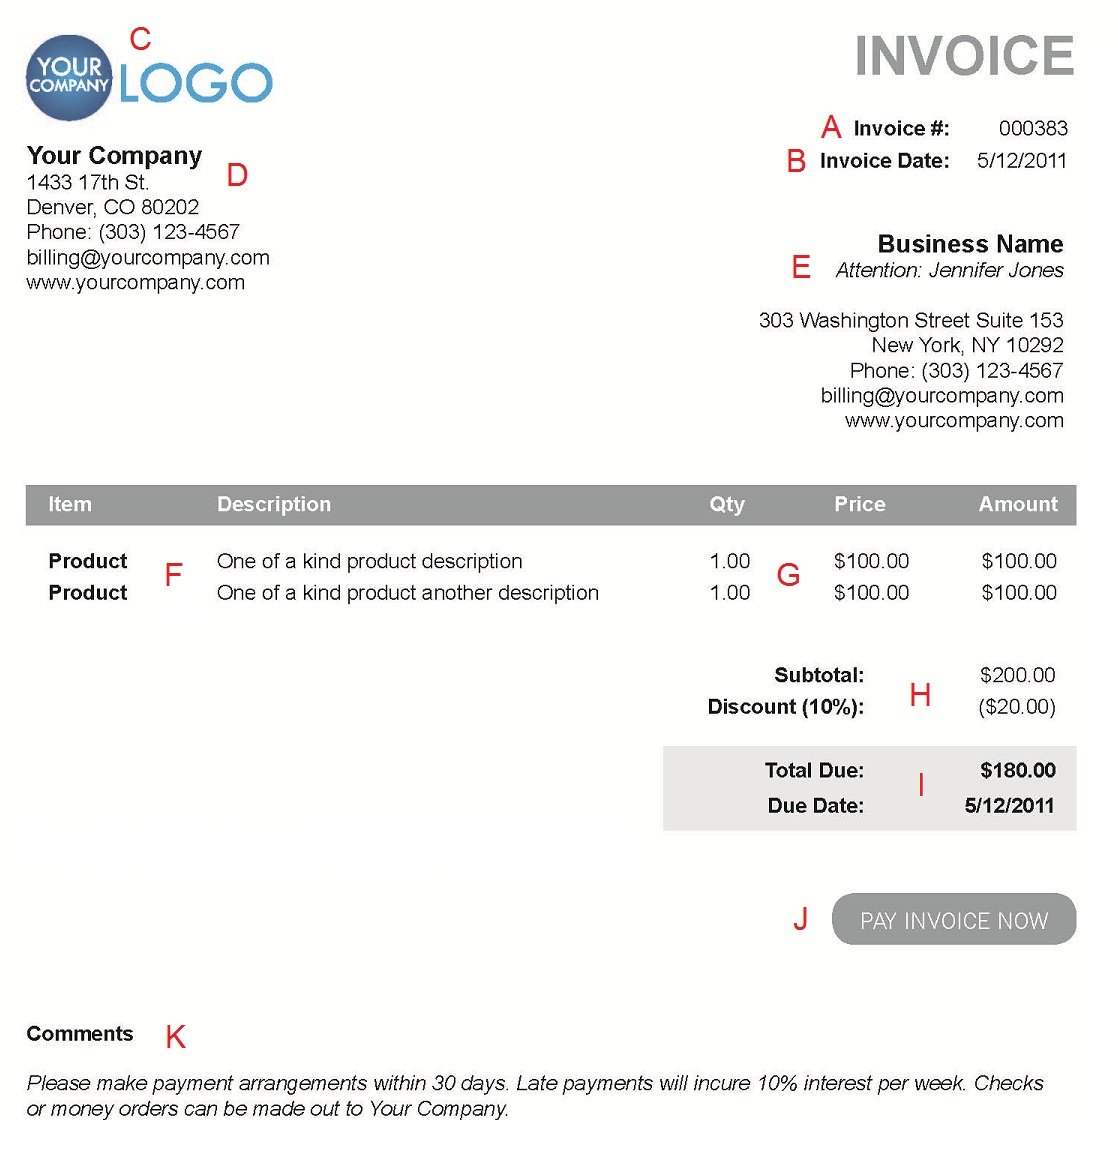 Opposenewapstandardsus  Prepossessing The  Different Sections Of An Electronic Payment Invoice With Entrancing A  With Astonishing Total Invoice Also Pages Invoice Templates In Addition Sage Email Invoices And Invoice Template For Services Provided As Well As Invoice And Po Additionally Invoice Discounting Advantages And Disadvantages From Paysimplecom With Opposenewapstandardsus  Entrancing The  Different Sections Of An Electronic Payment Invoice With Astonishing A  And Prepossessing Total Invoice Also Pages Invoice Templates In Addition Sage Email Invoices From Paysimplecom